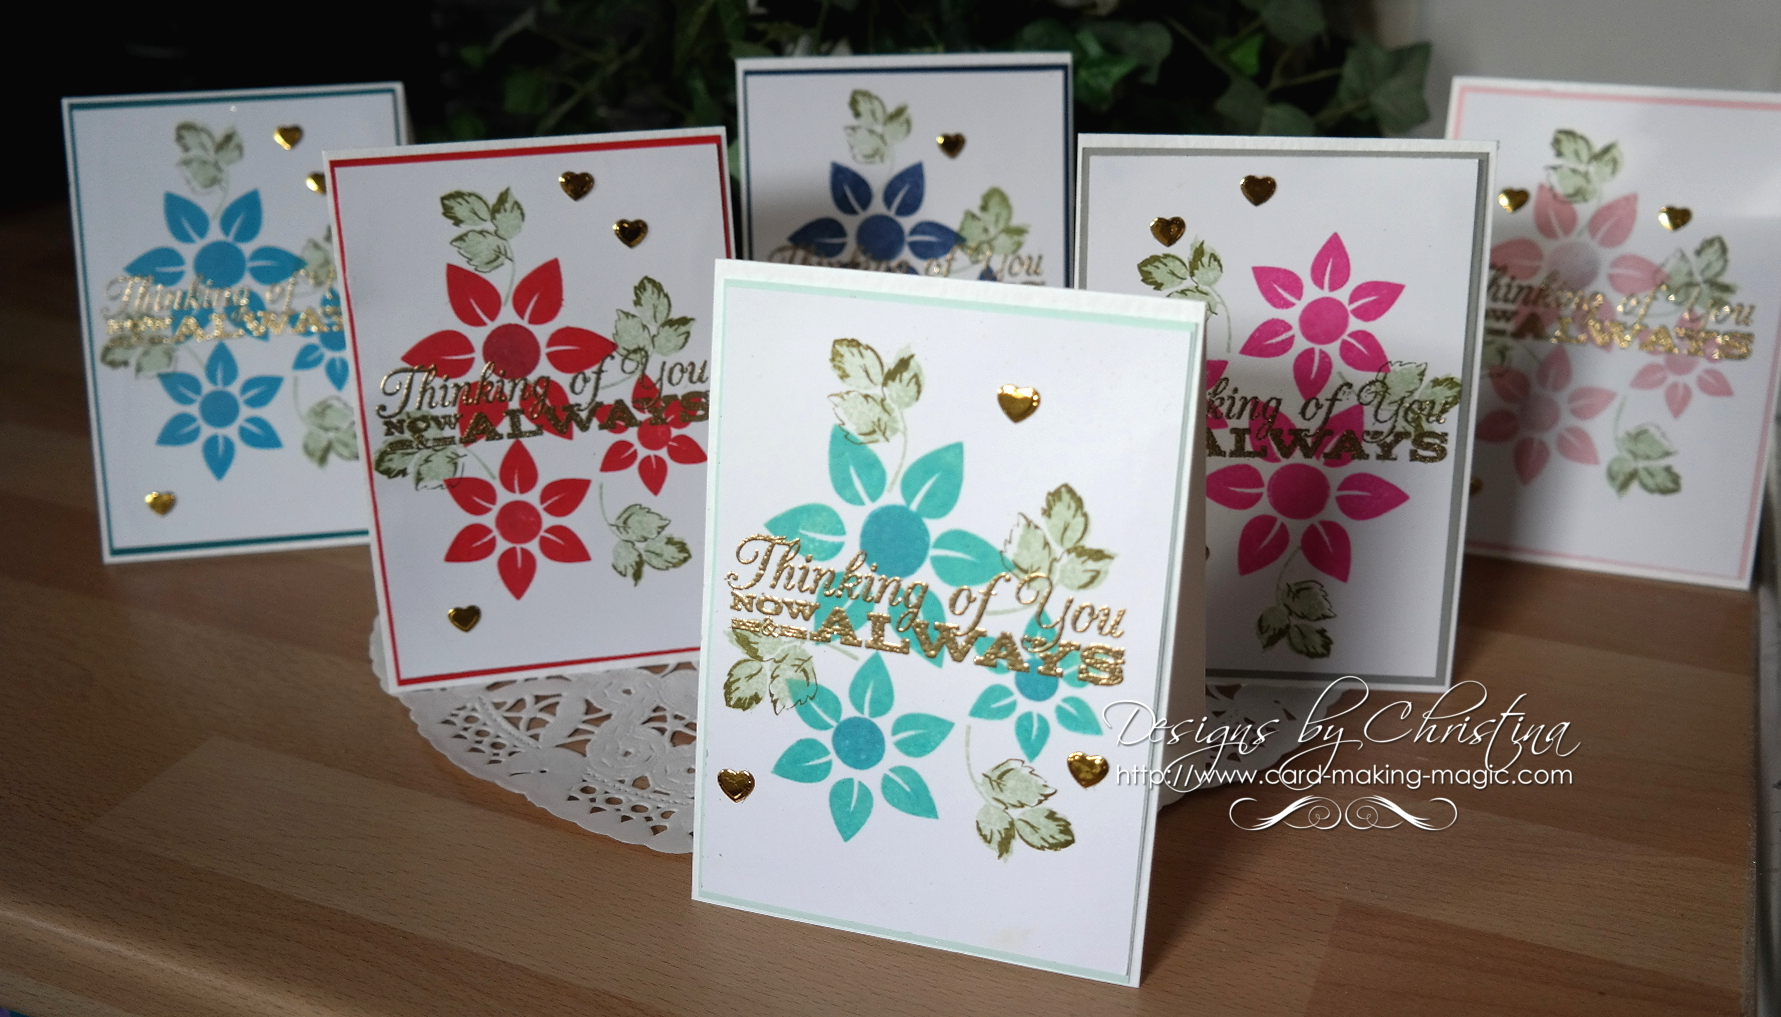 Multi stamping with the Misti